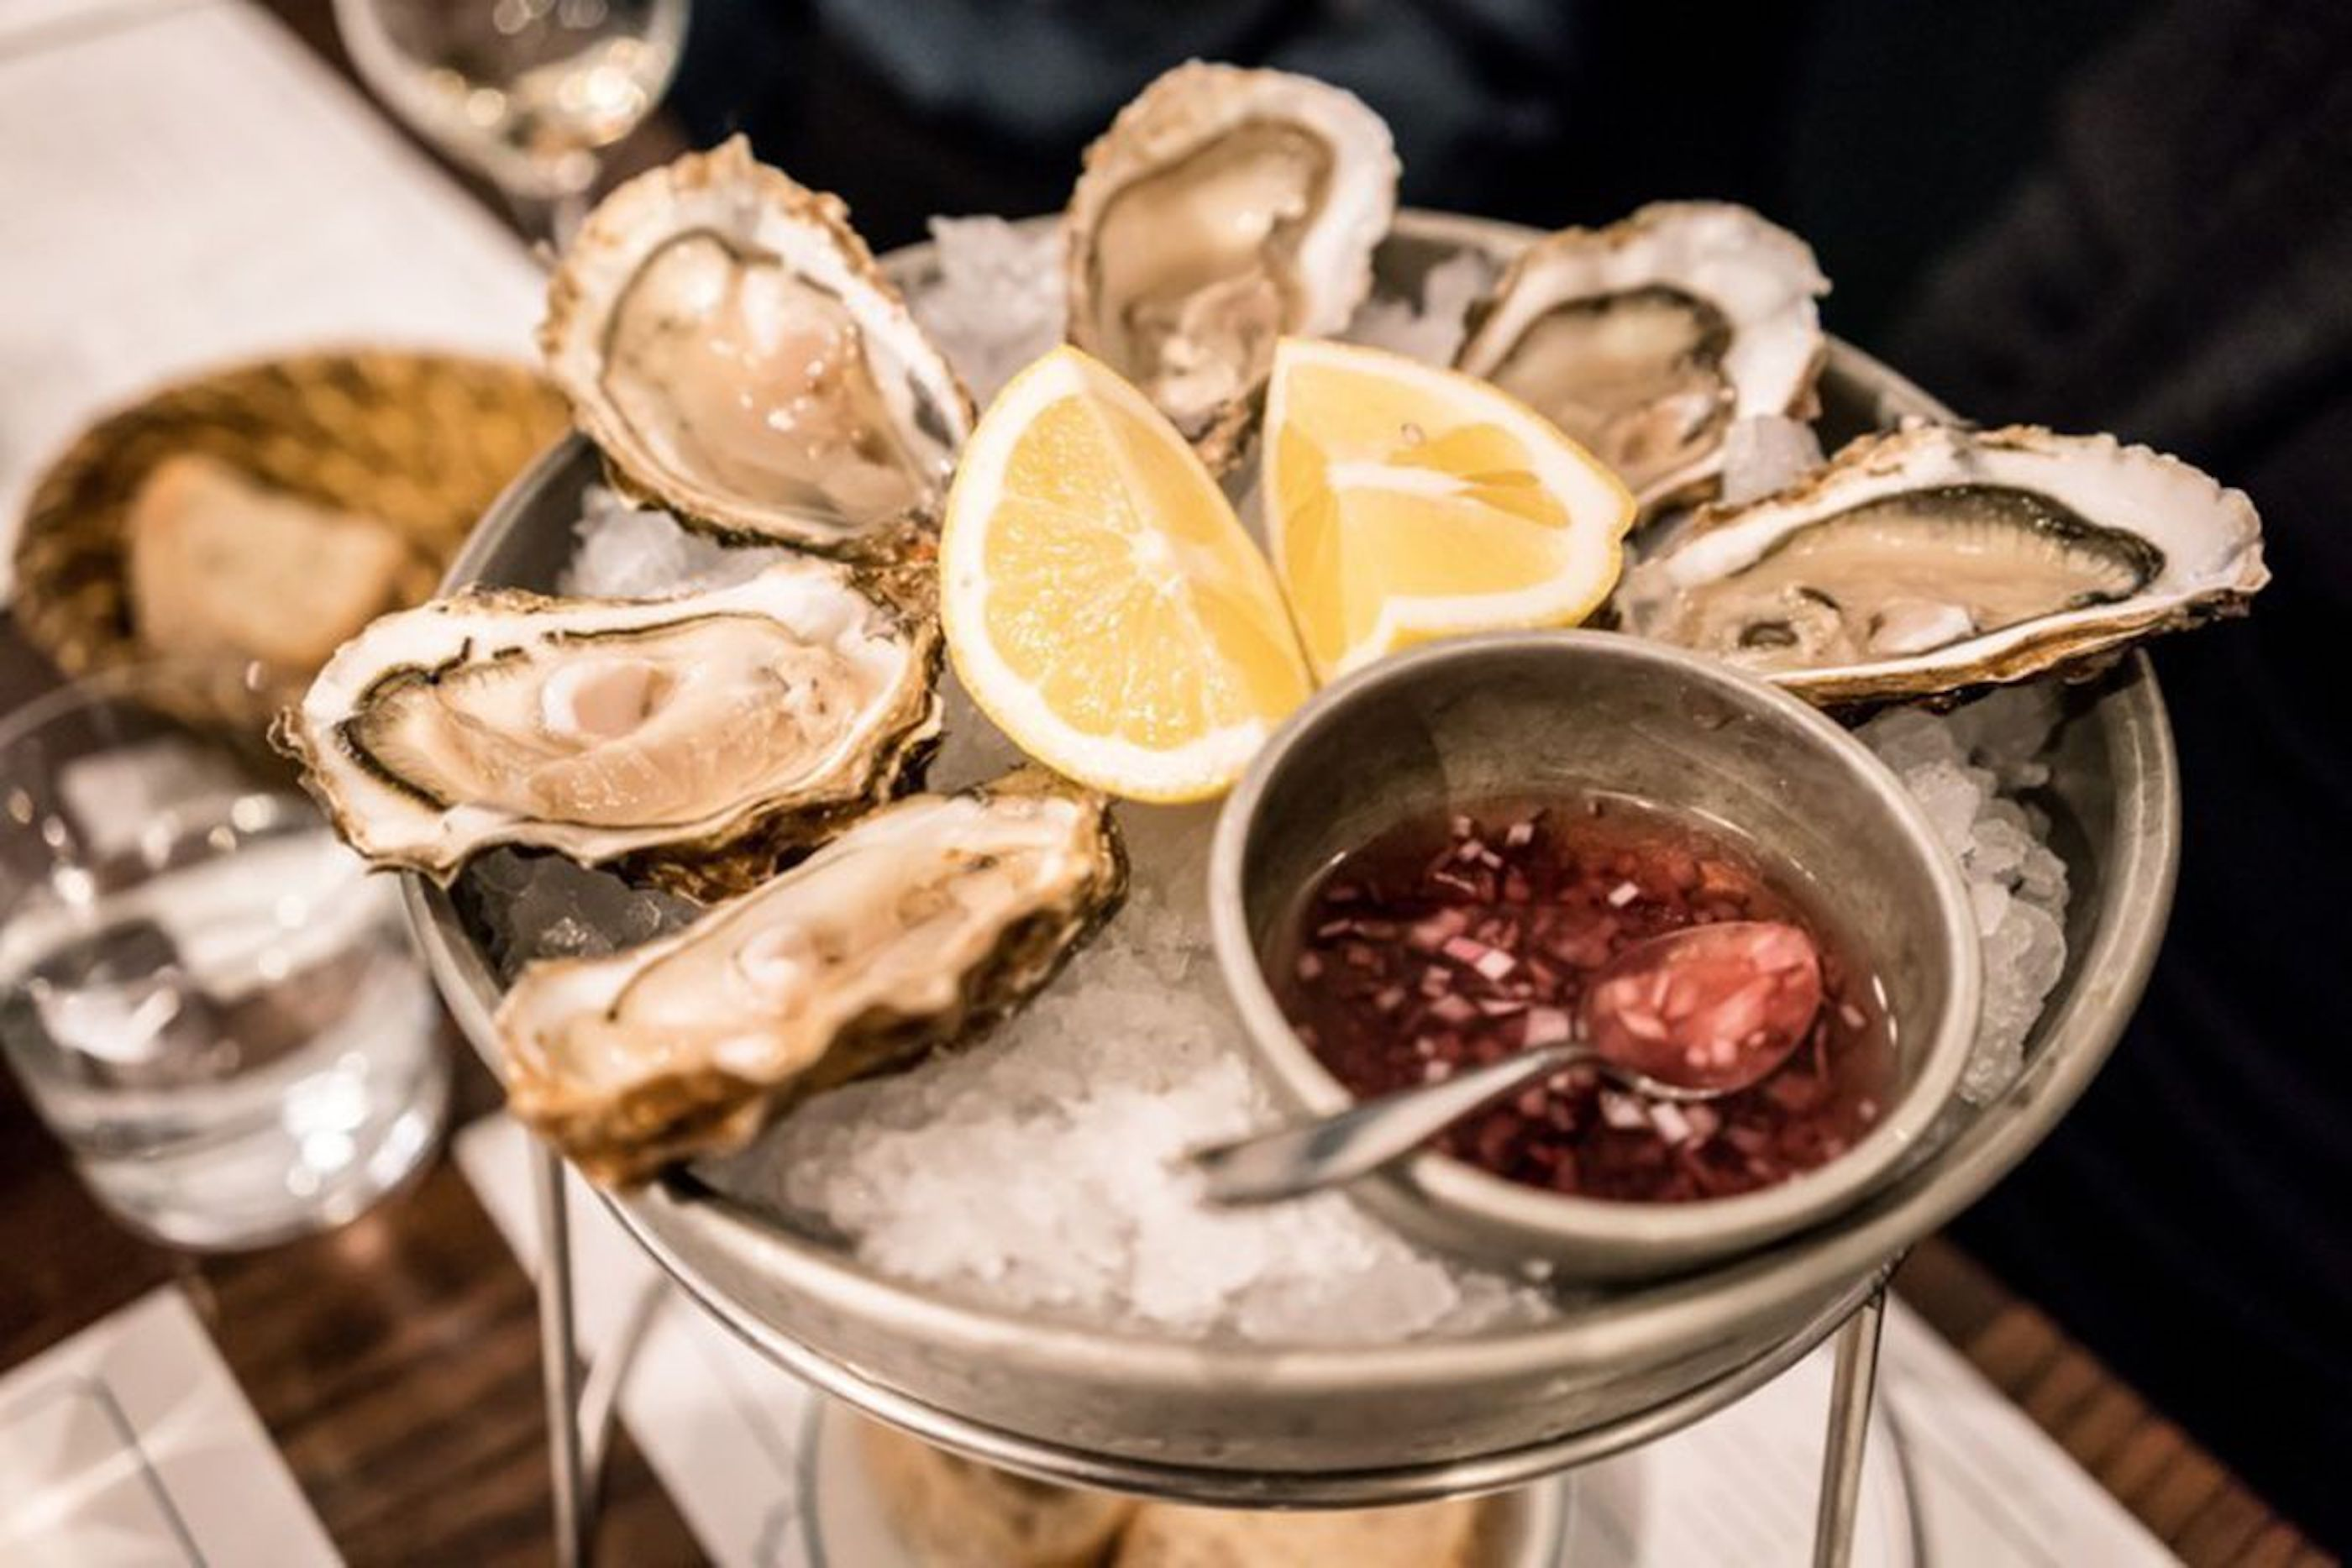 Oysters on ice with mignonette and lemon